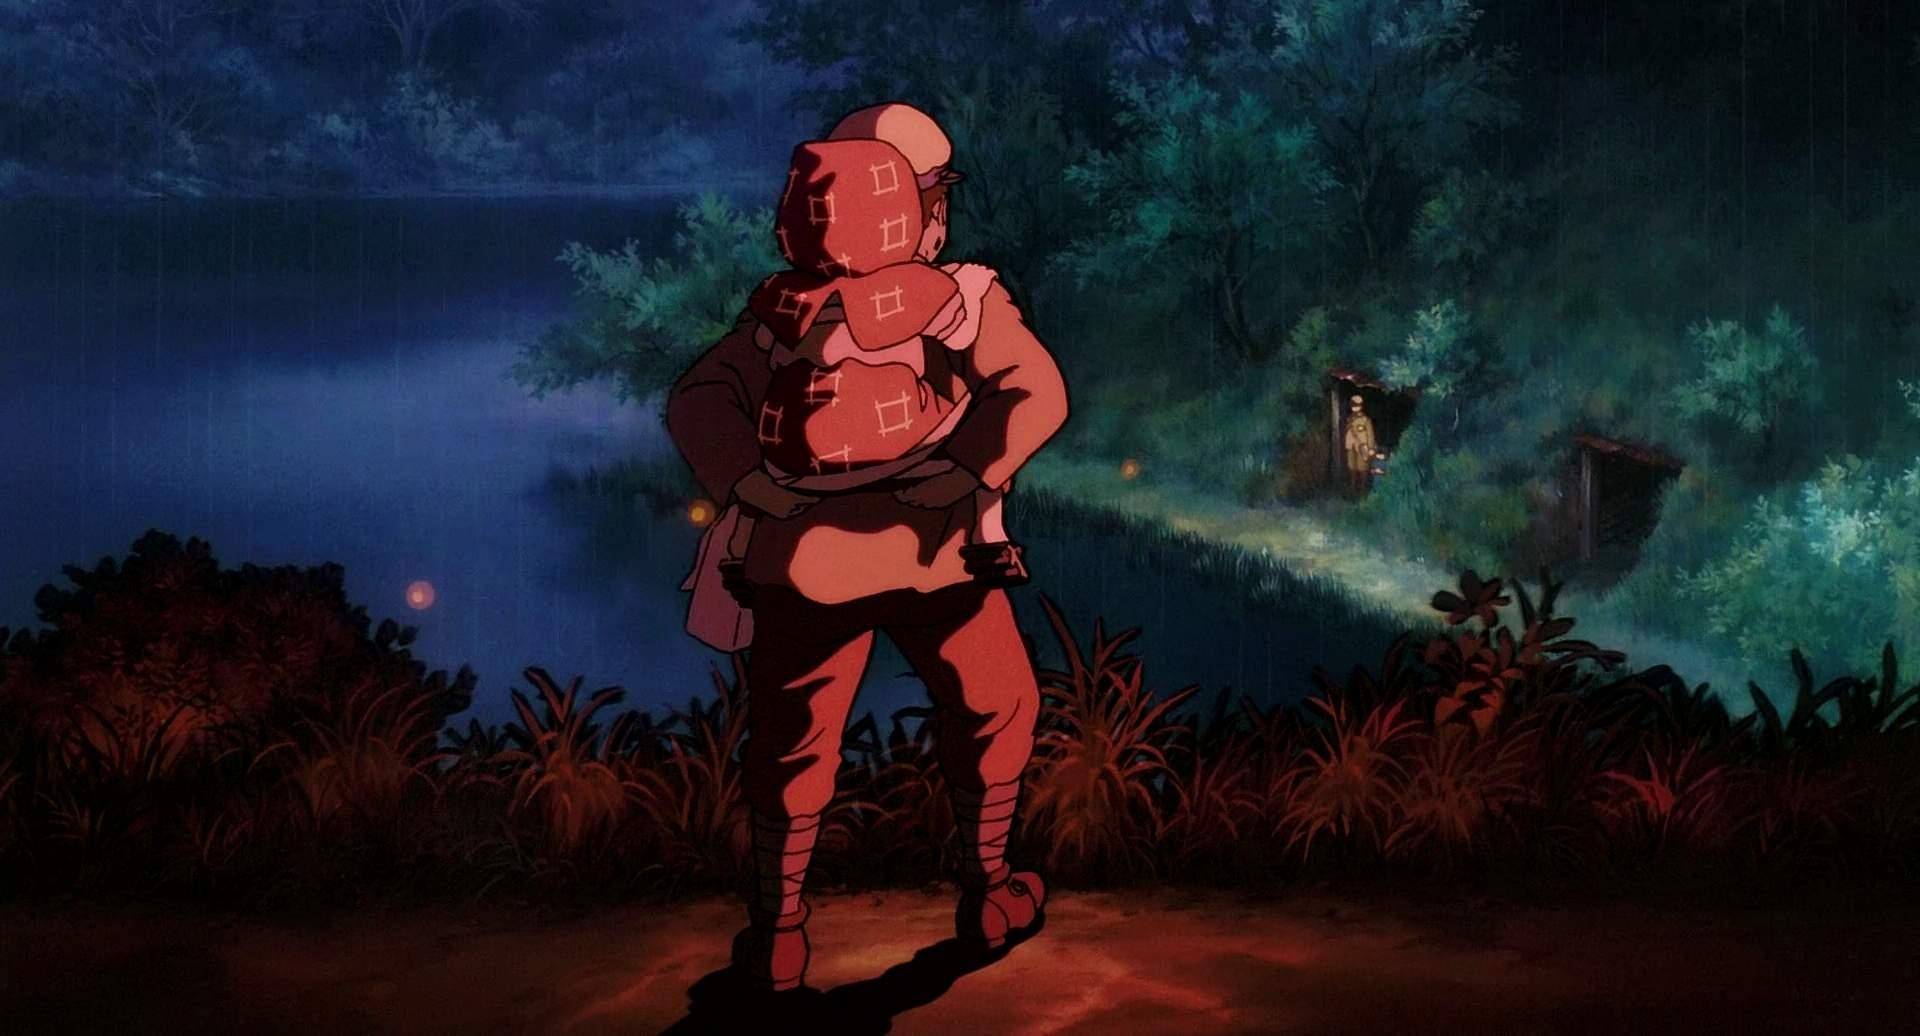 GraveoftheFireflies-Movie1988-SS4-O Grave of the Fireflies Movie Review